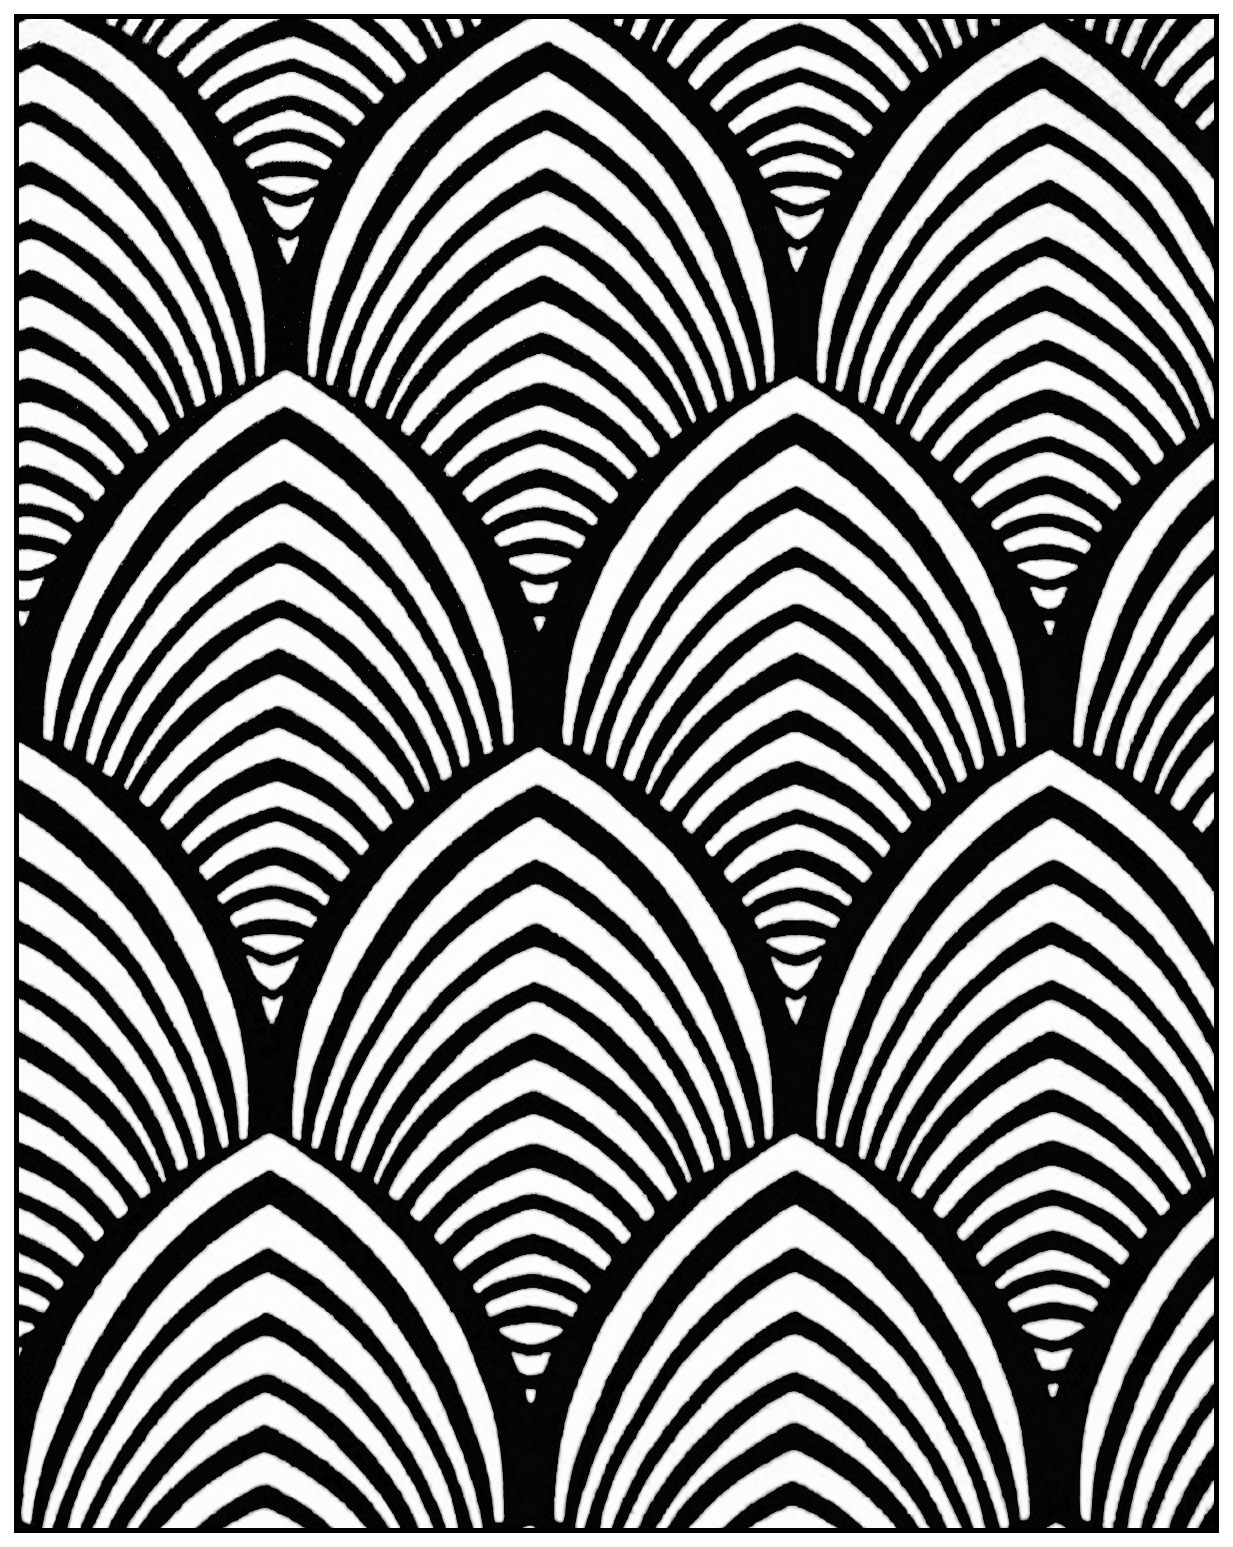 - Geometric Patterns Art Deco 4 - Art Deco Adult Coloring Pages